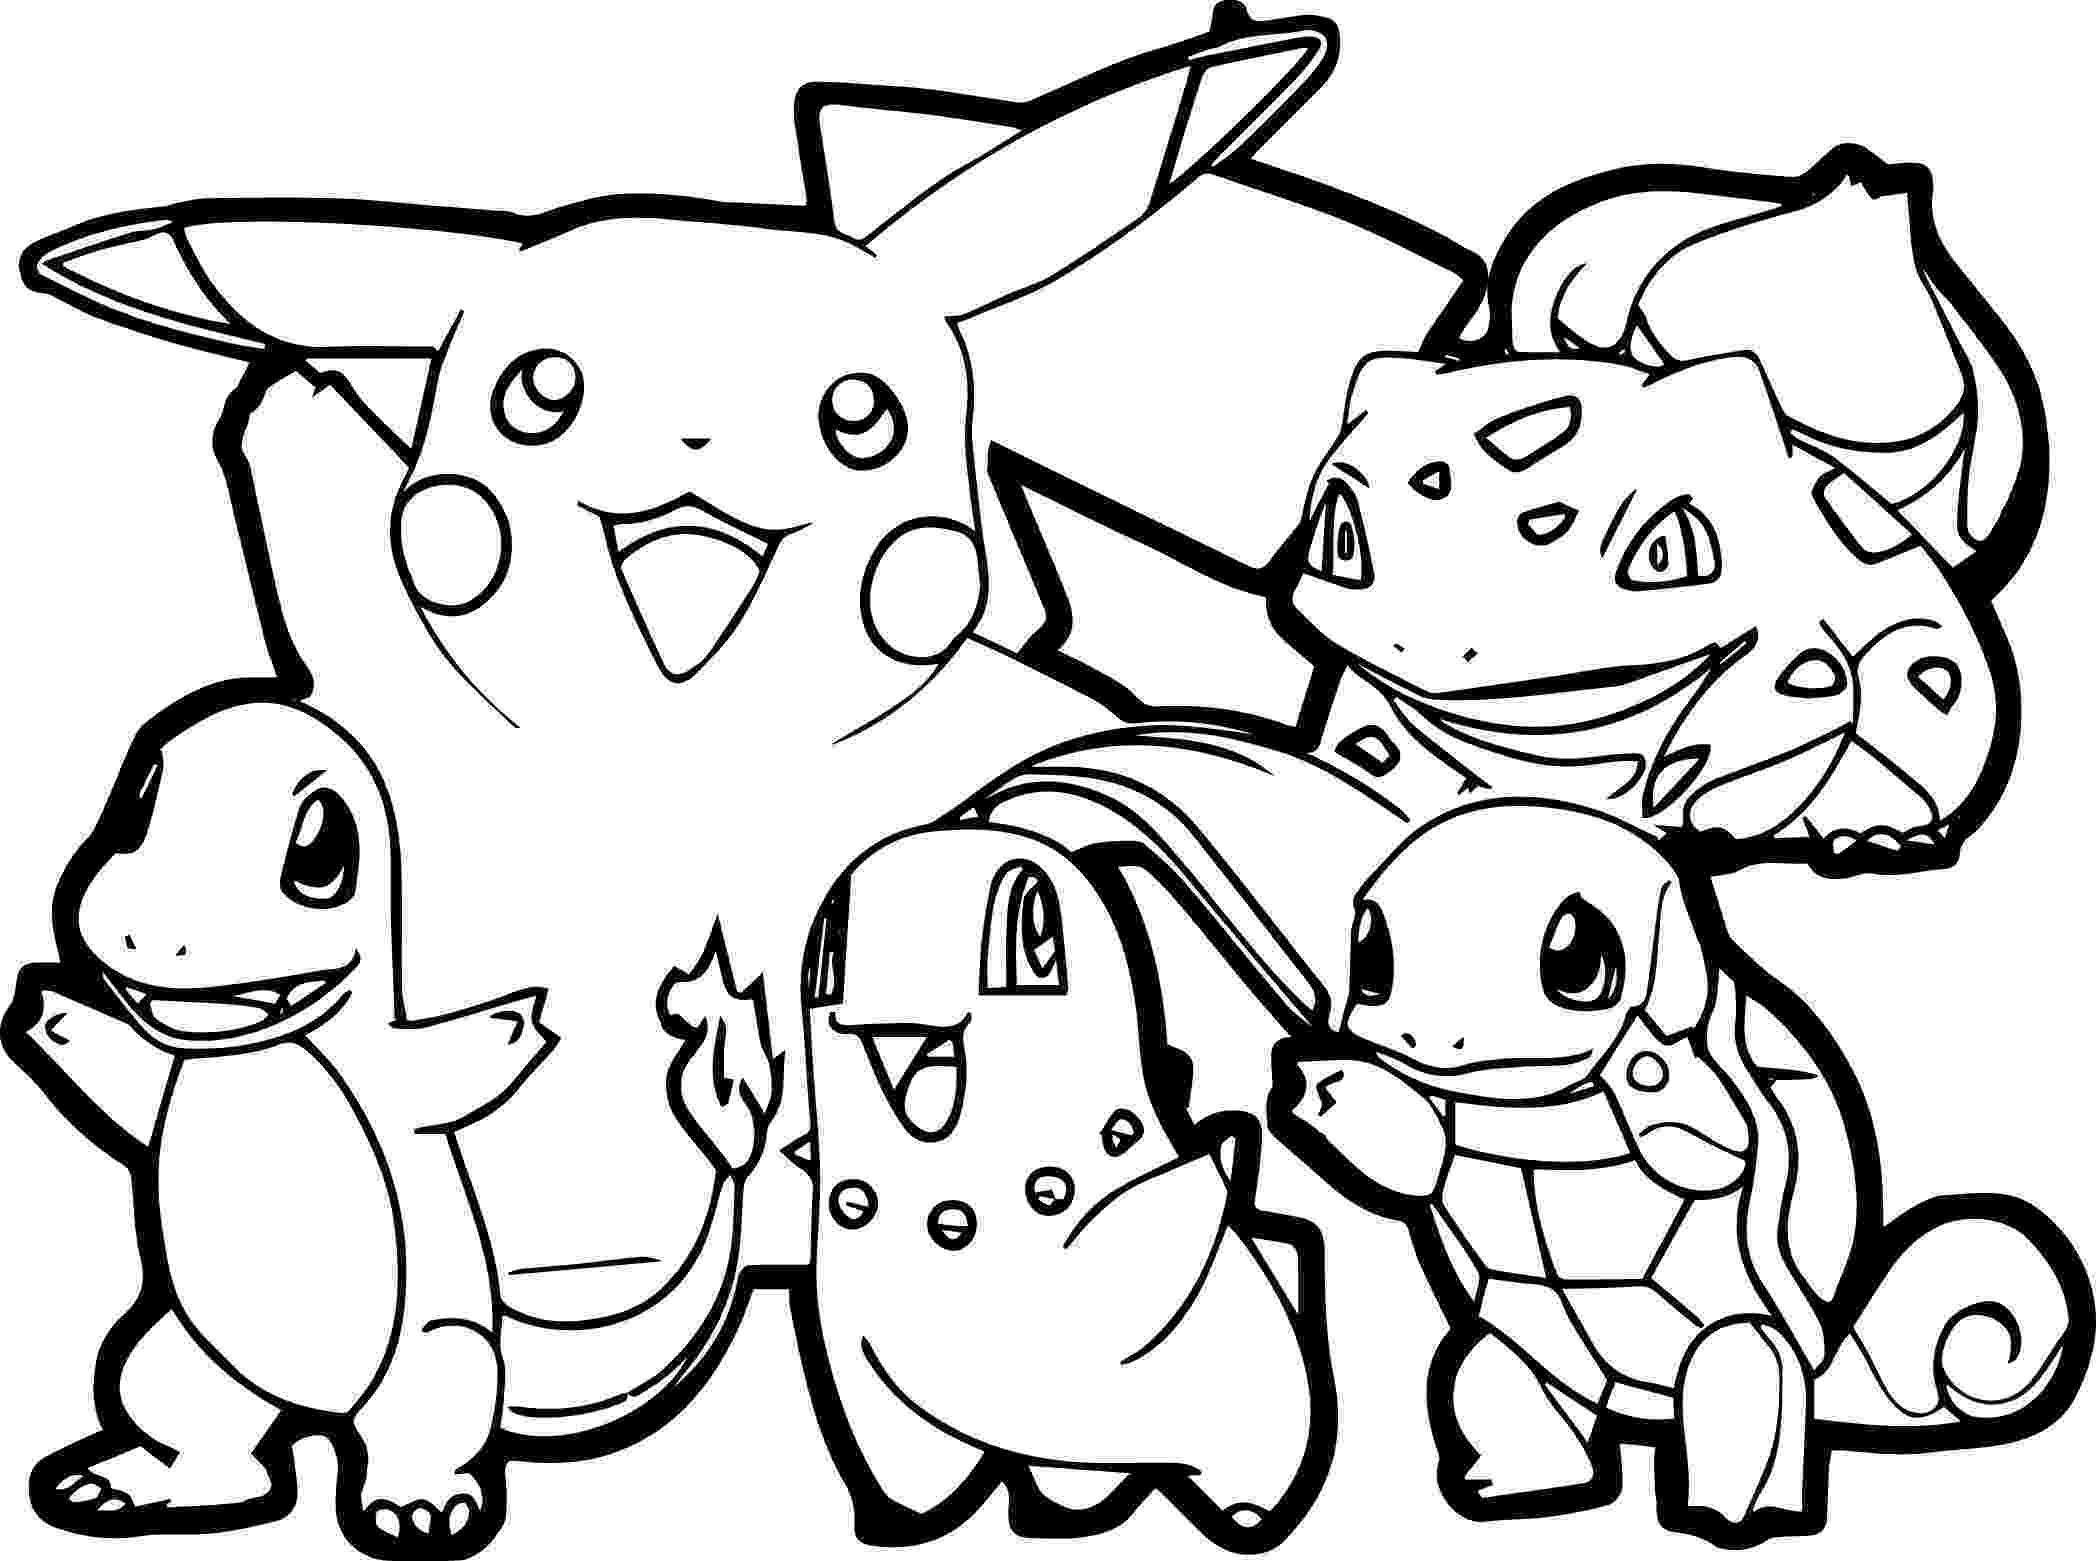 pokeman coloring pages pokemon coloring pages join your favorite pokemon on an pokeman pages coloring